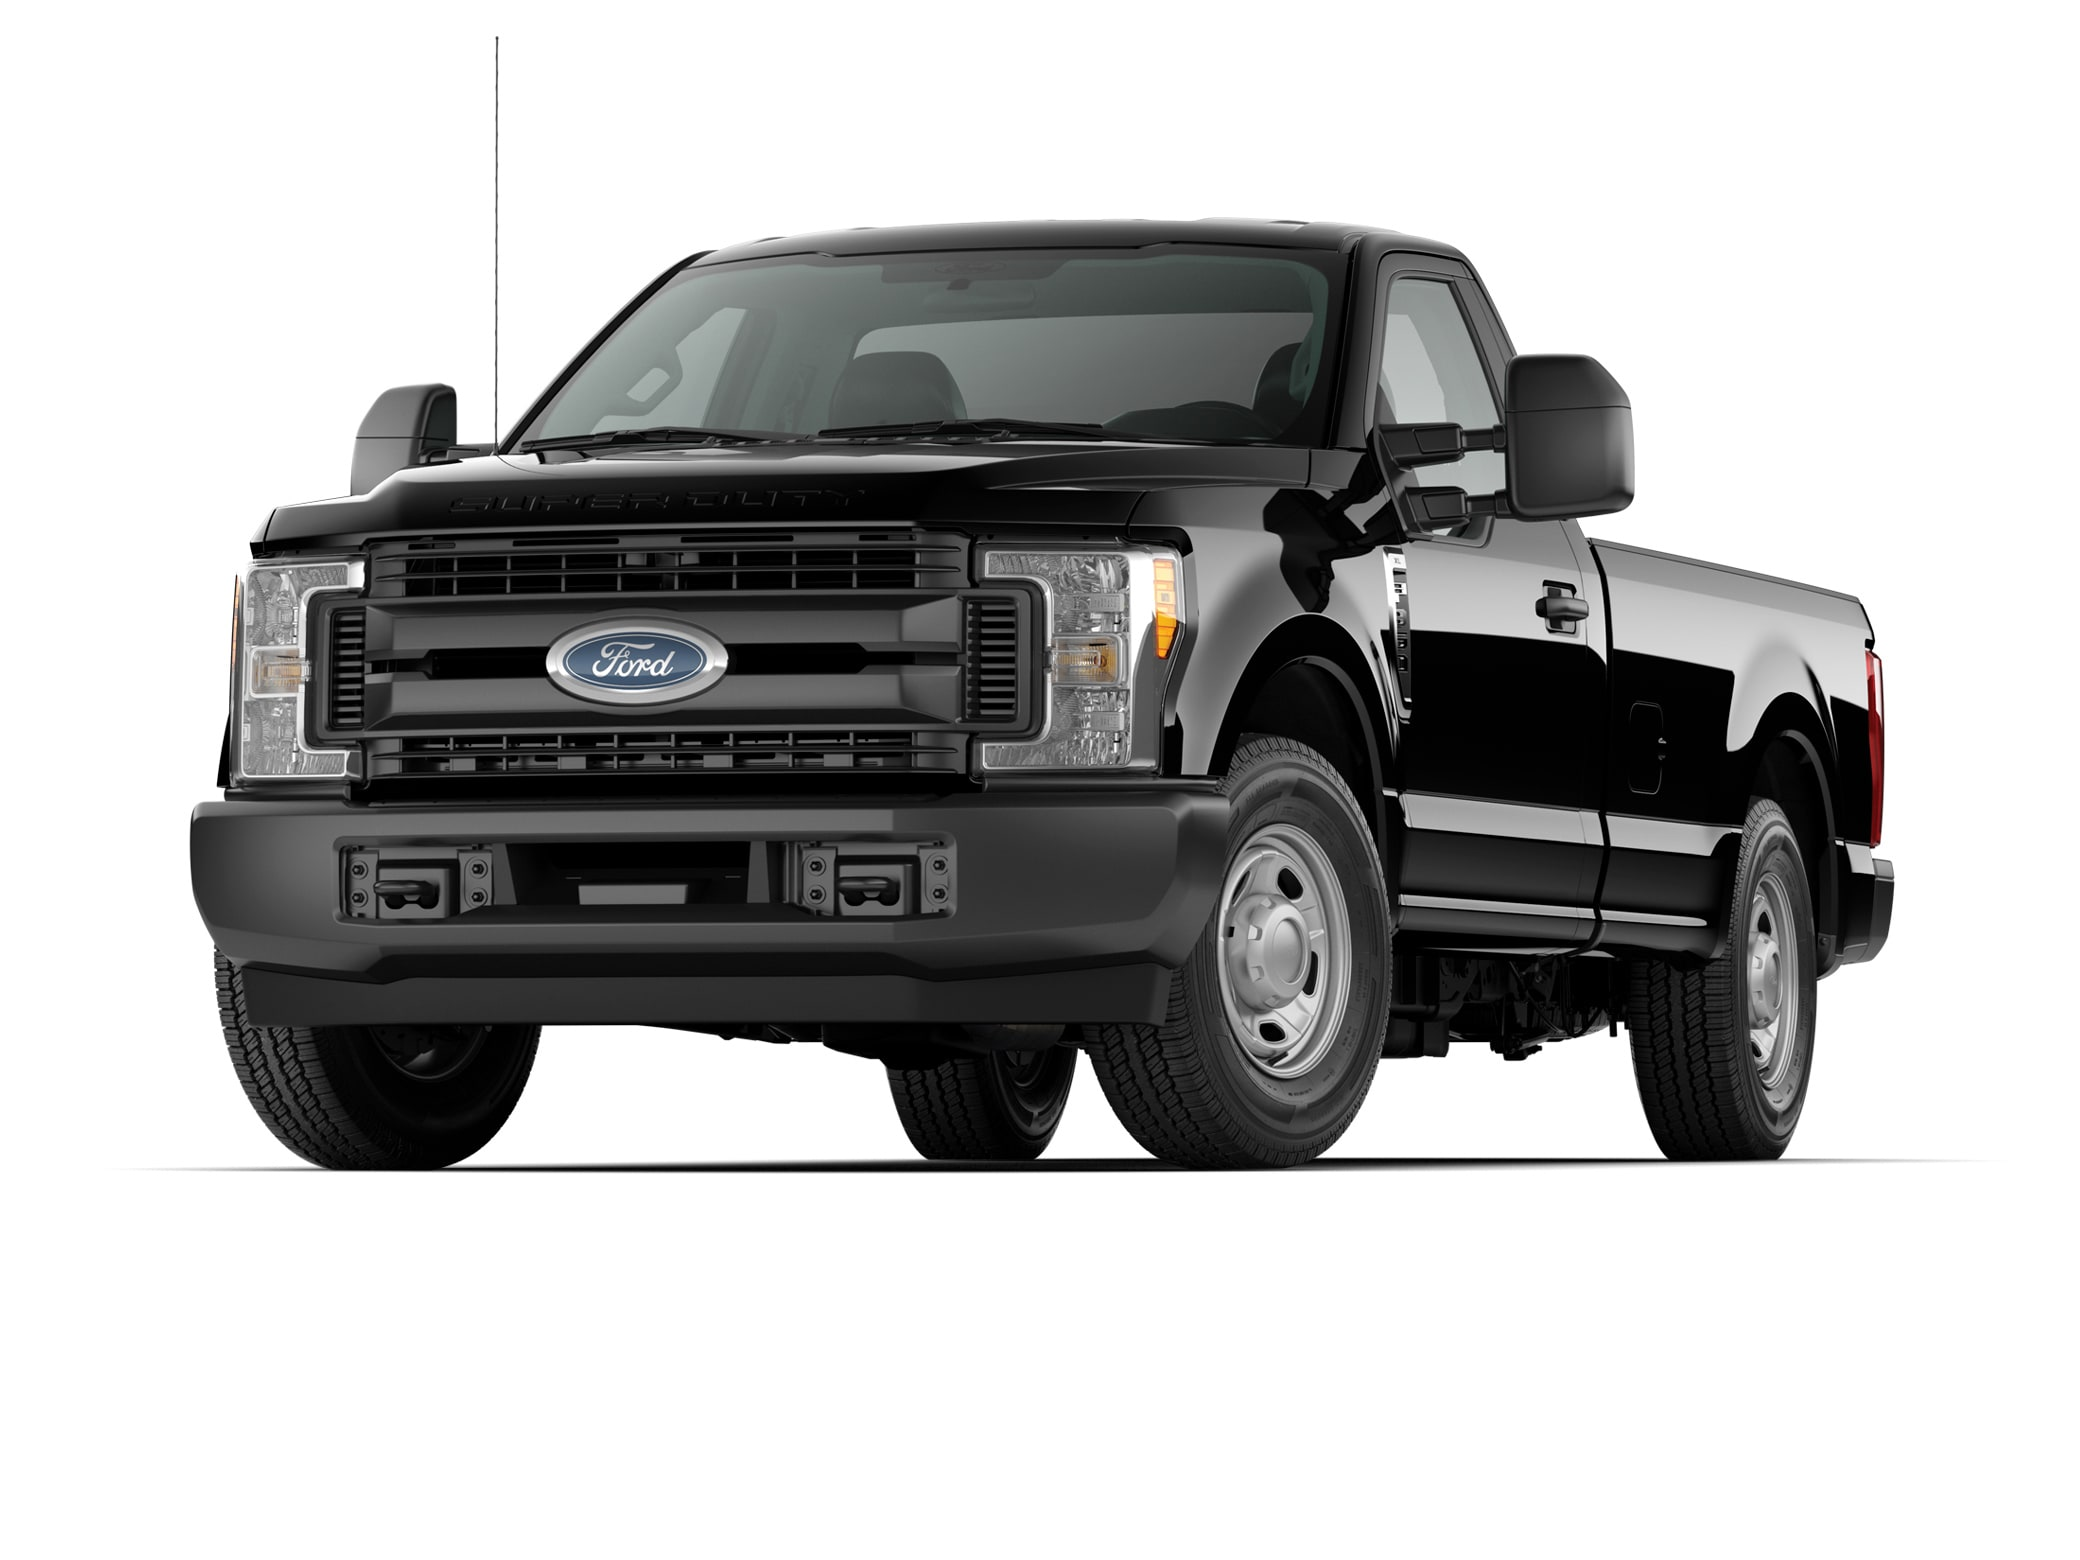 2019 Ford F-350 Truck Digital Showroom | Penske Ford La Mesa